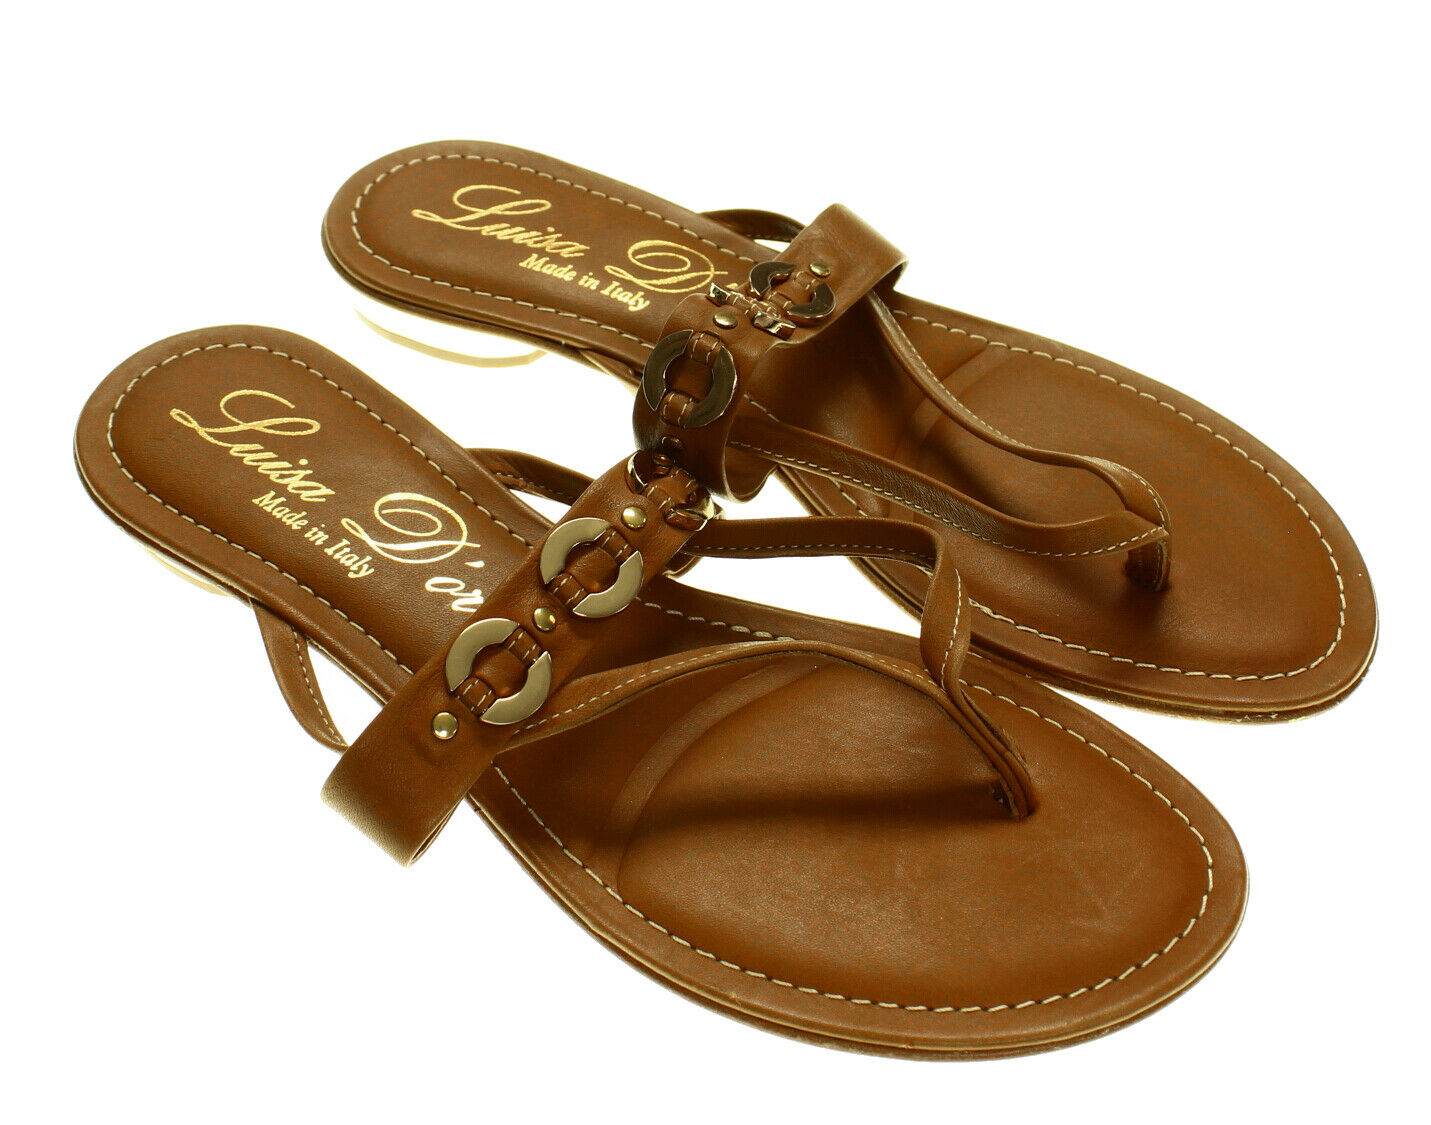 NEW - LUISA D'ORIO Women's FLIP FLOP Brown THONG SANDALS - US 9